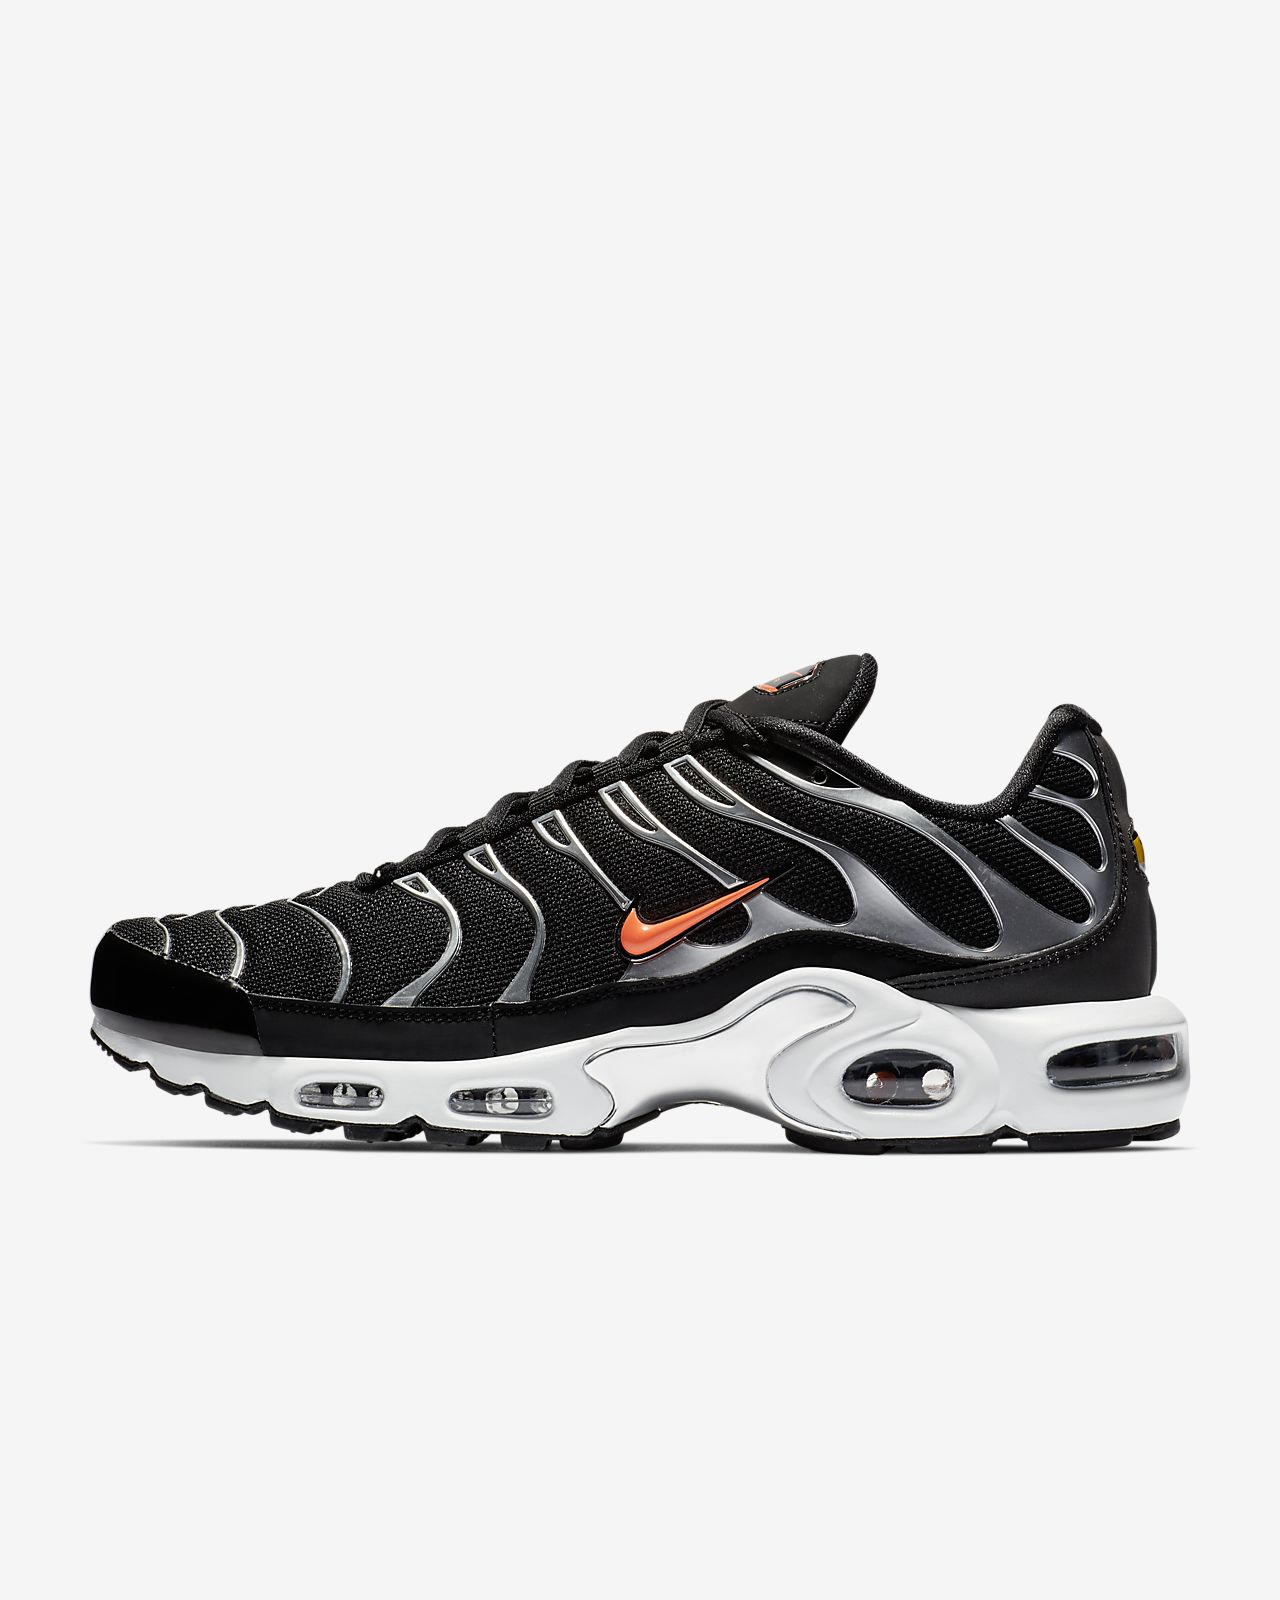 meet 0aa6c 8702b ... Nike Air Max Plus TN SE Men s Shoe